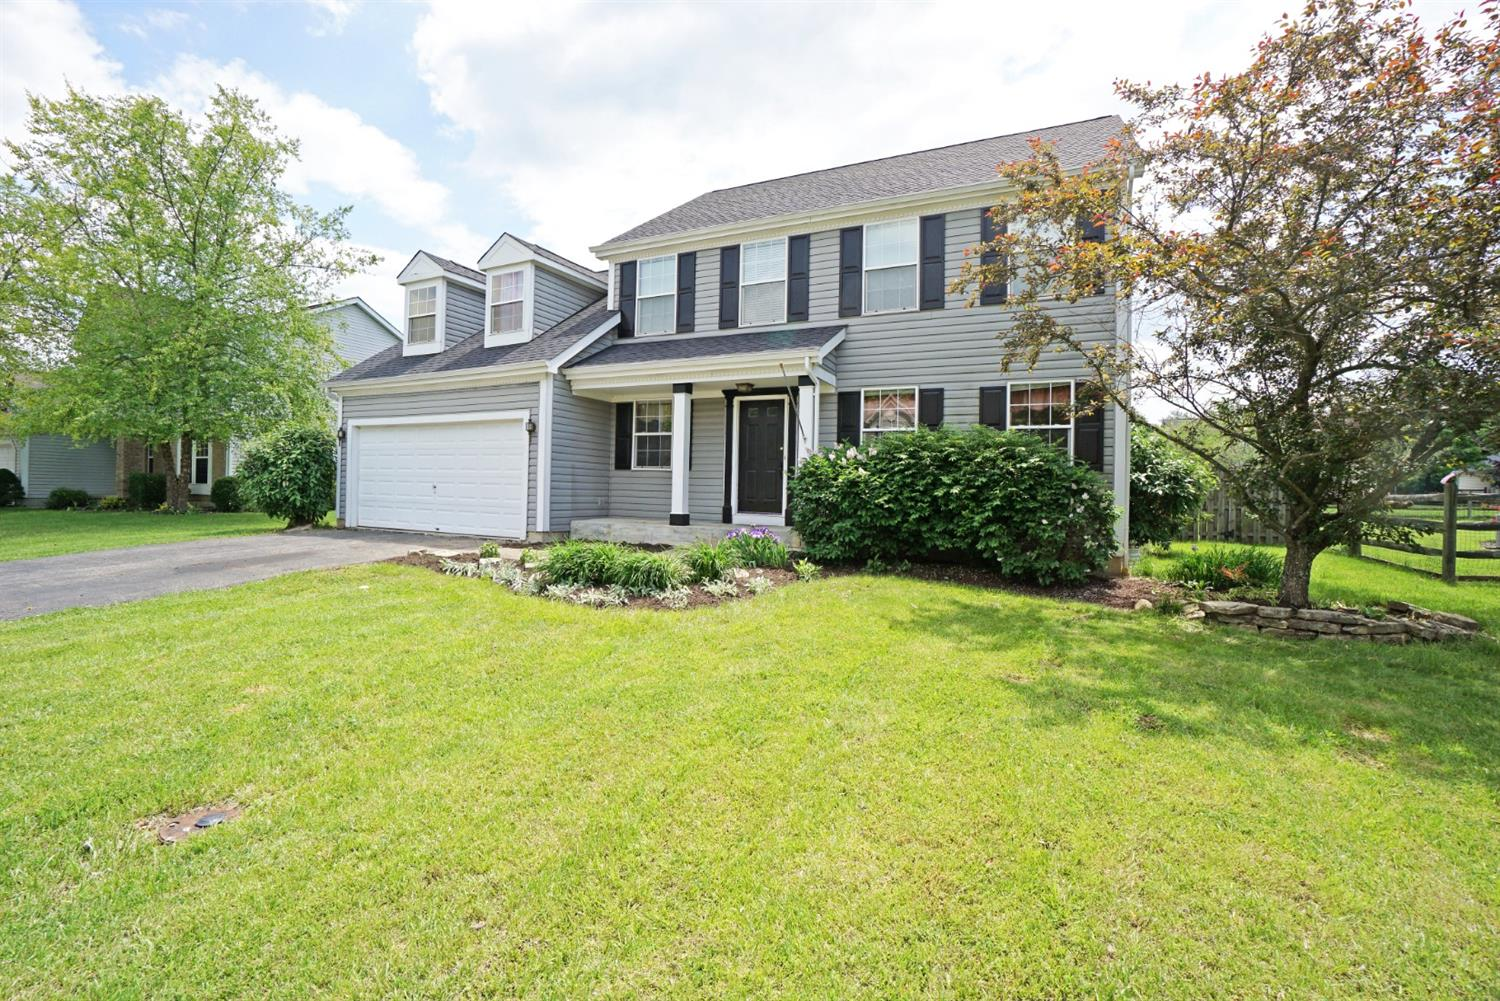 4576 Carnoustie Union Twp OH